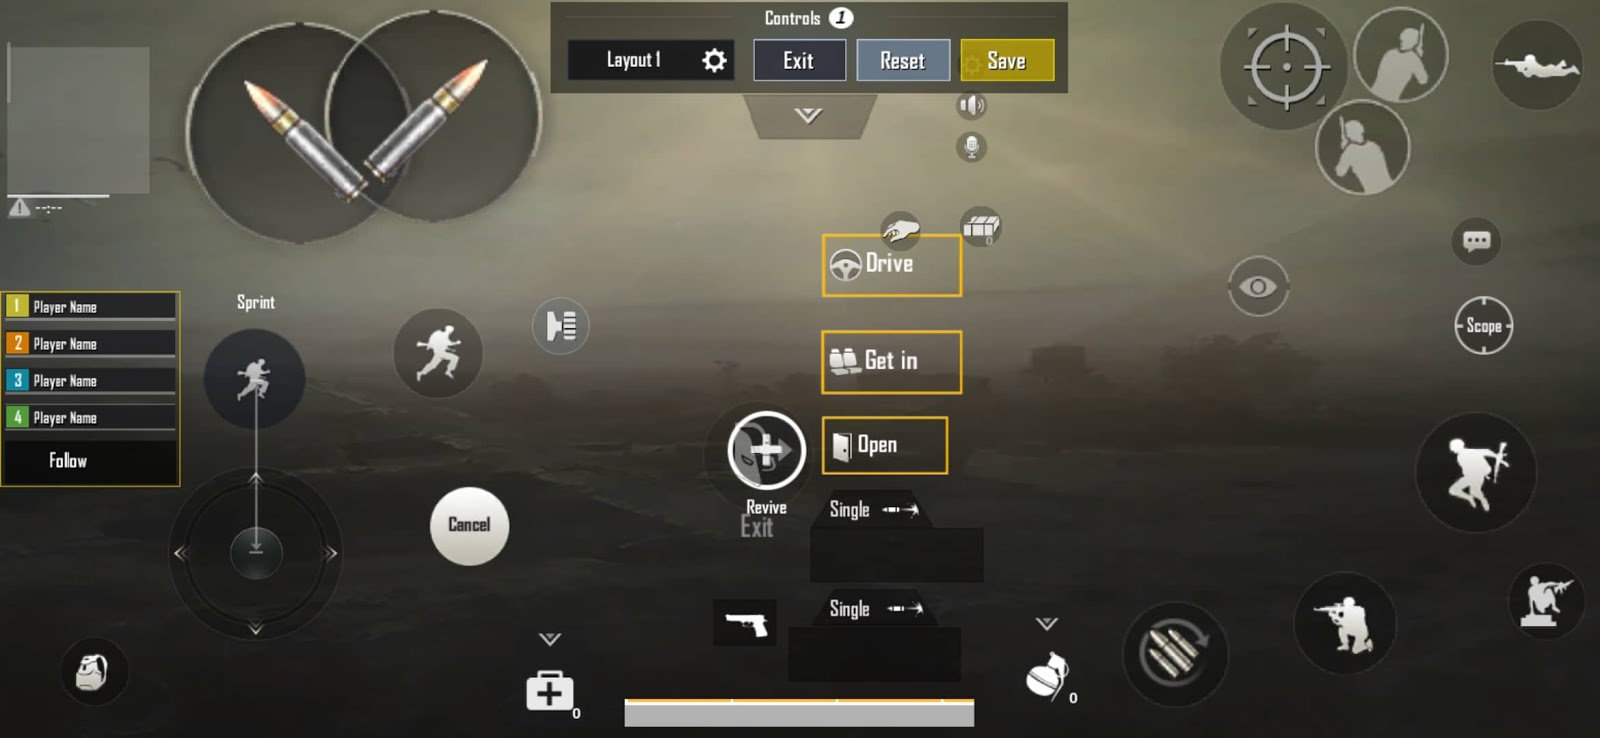 4 Finger Claw PUBG MOBILE Setup layout